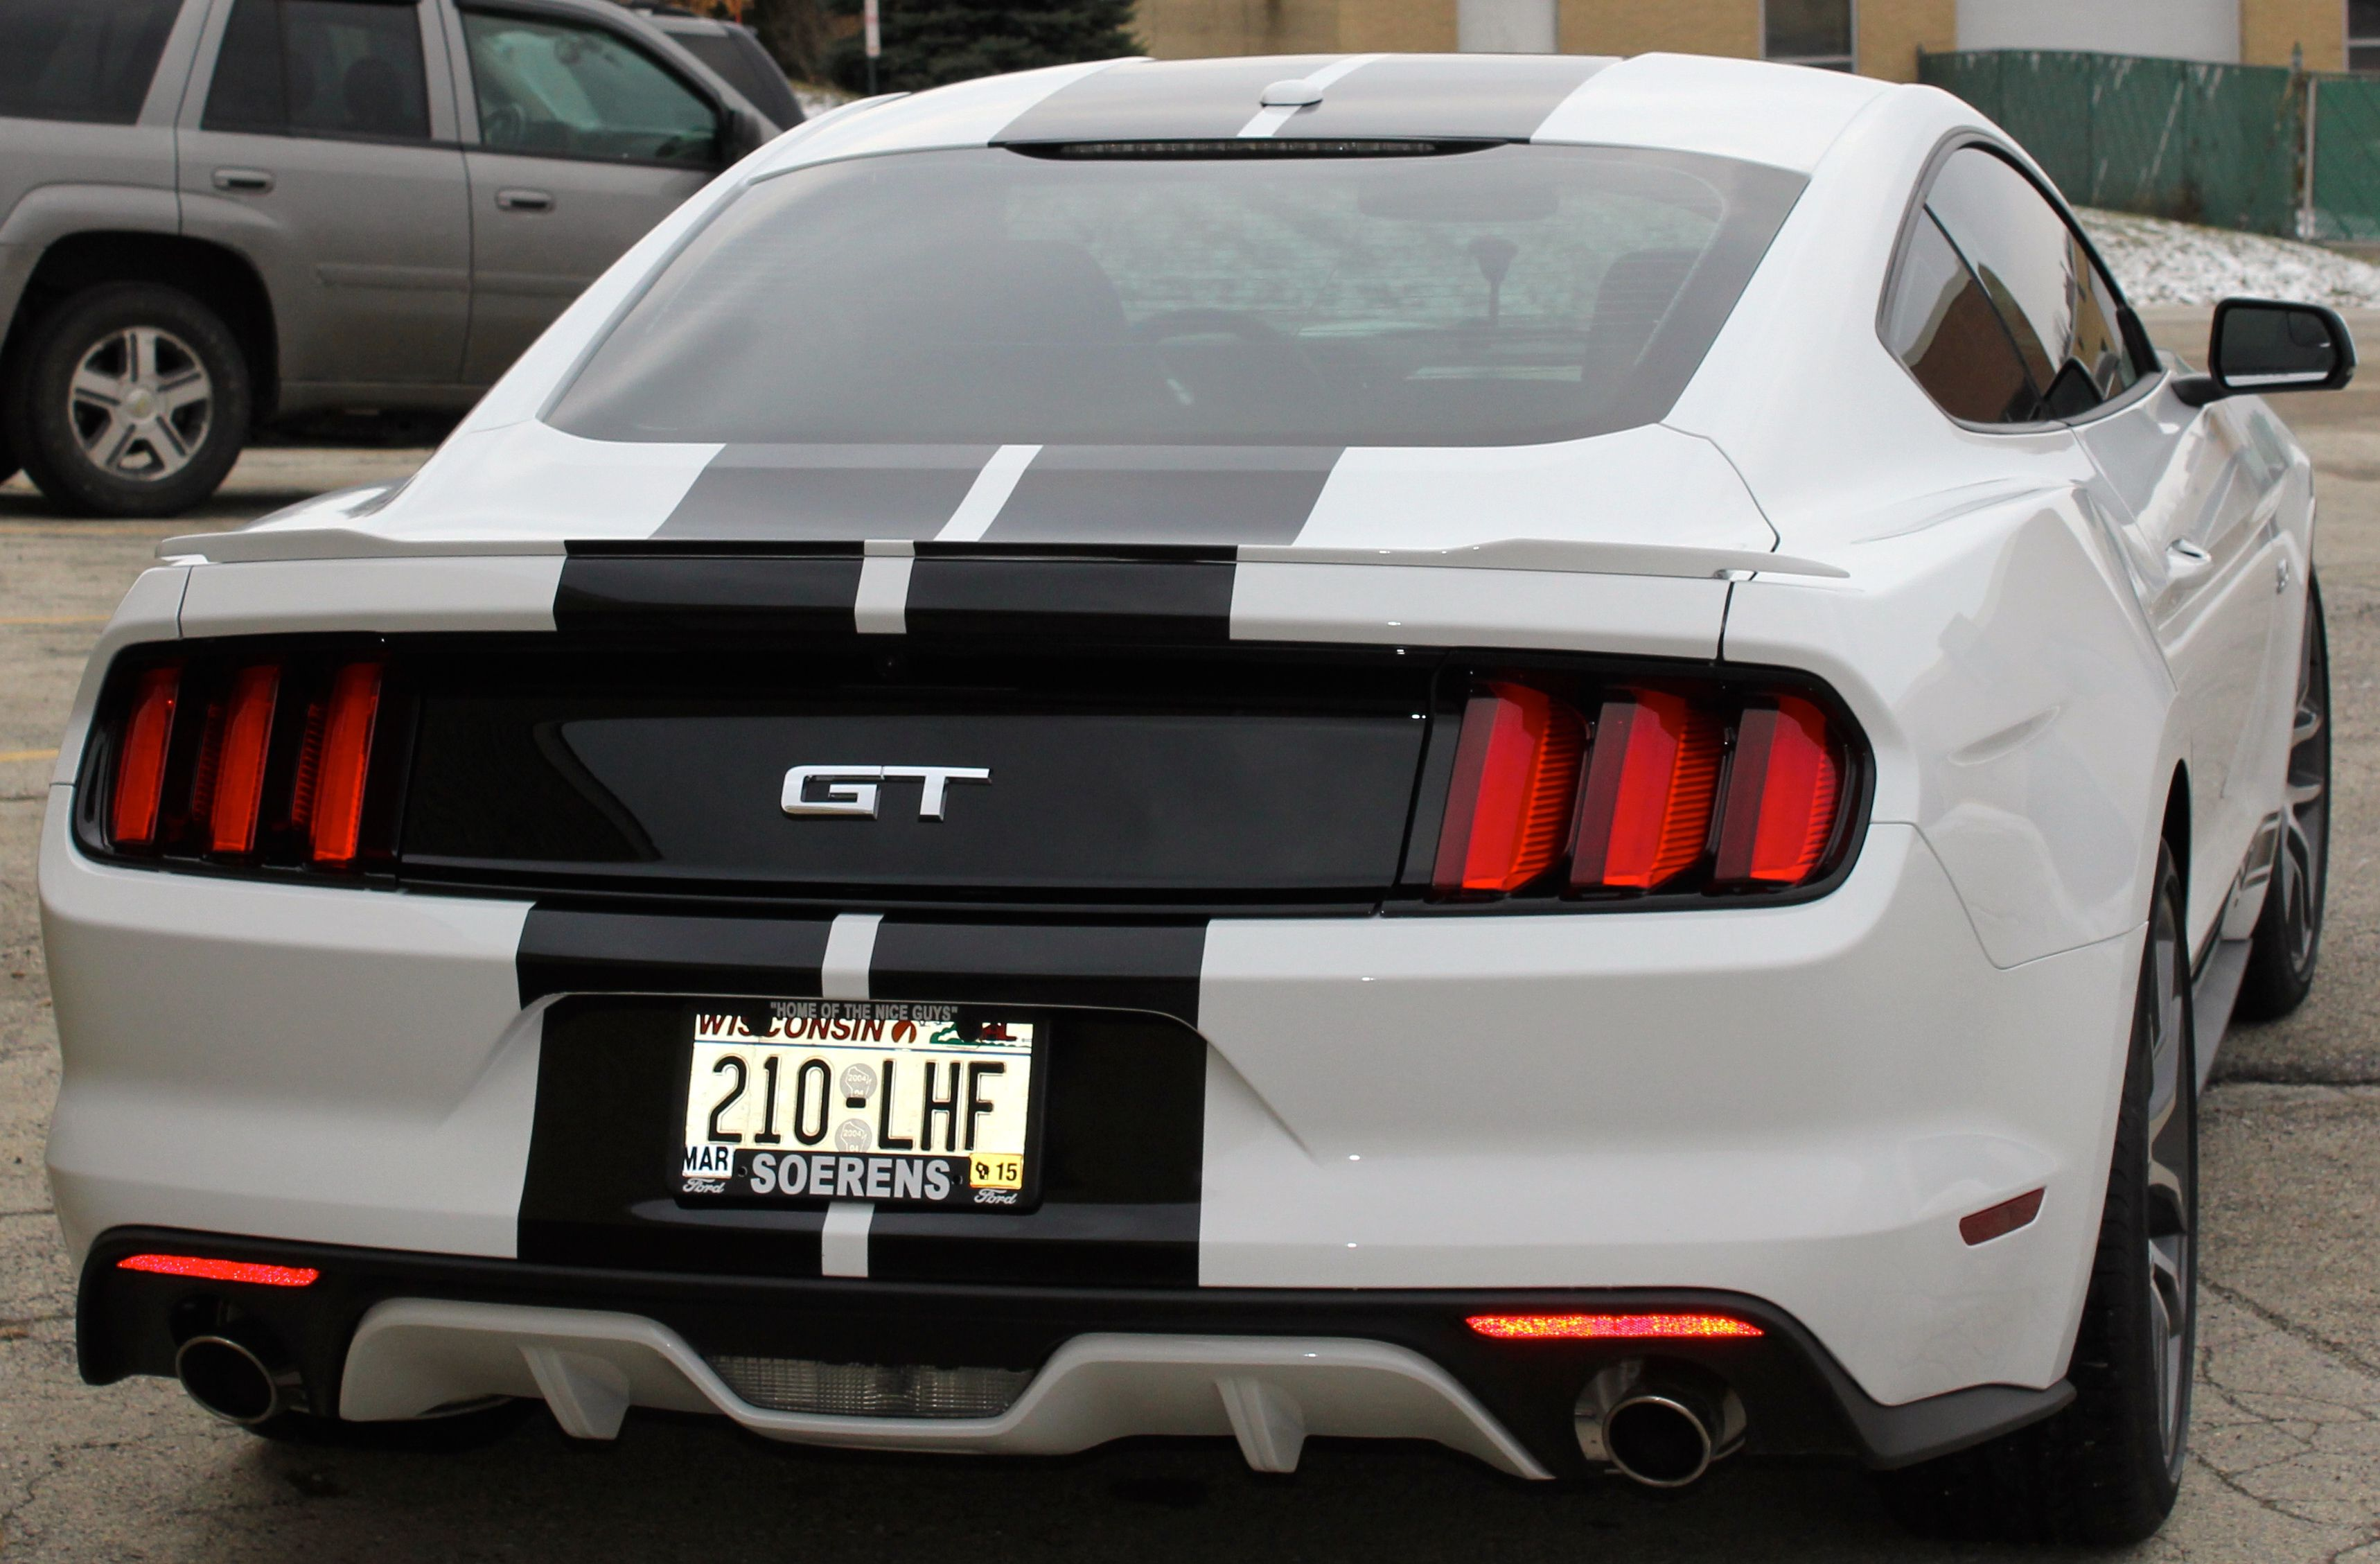 white mustang gt wblack stripes rear view 2015 mustangford - Ford Mustang Gt 2015 White